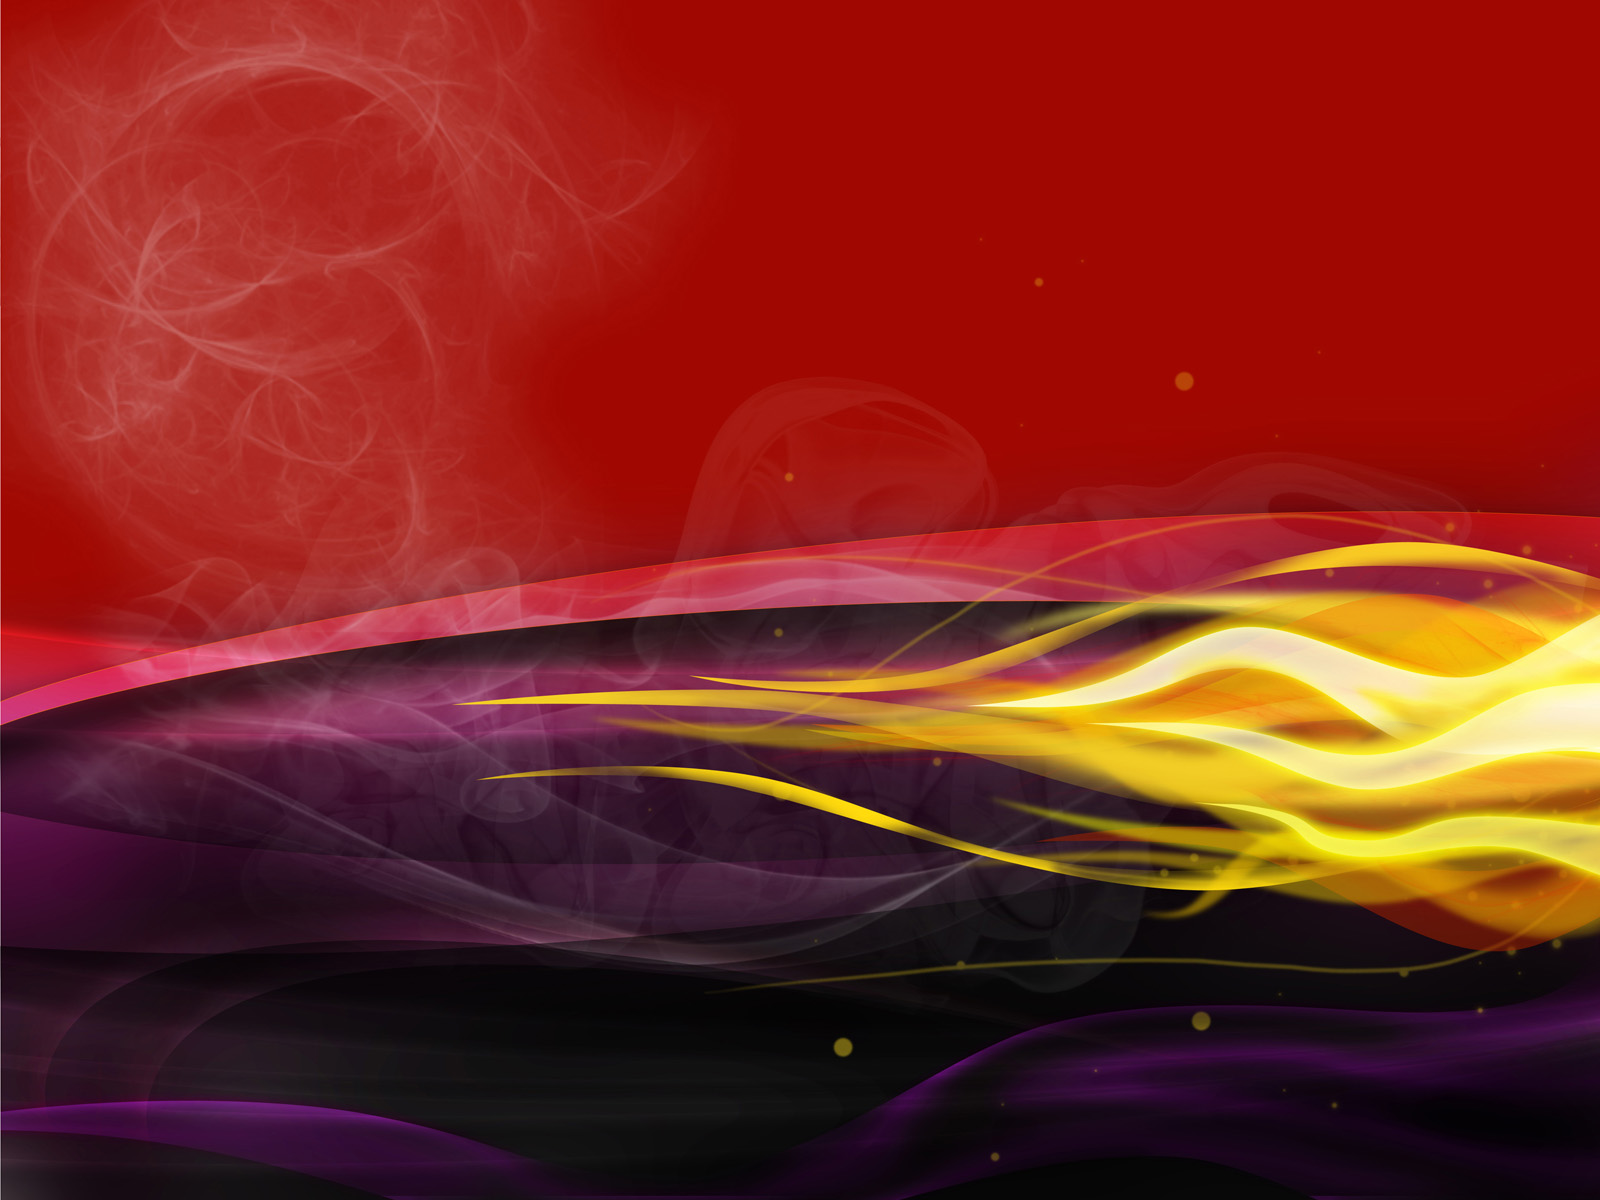 Abstract fire smoking flames ppt backgrounds abstract black abstract fire smoking flames ppt templates toneelgroepblik Images